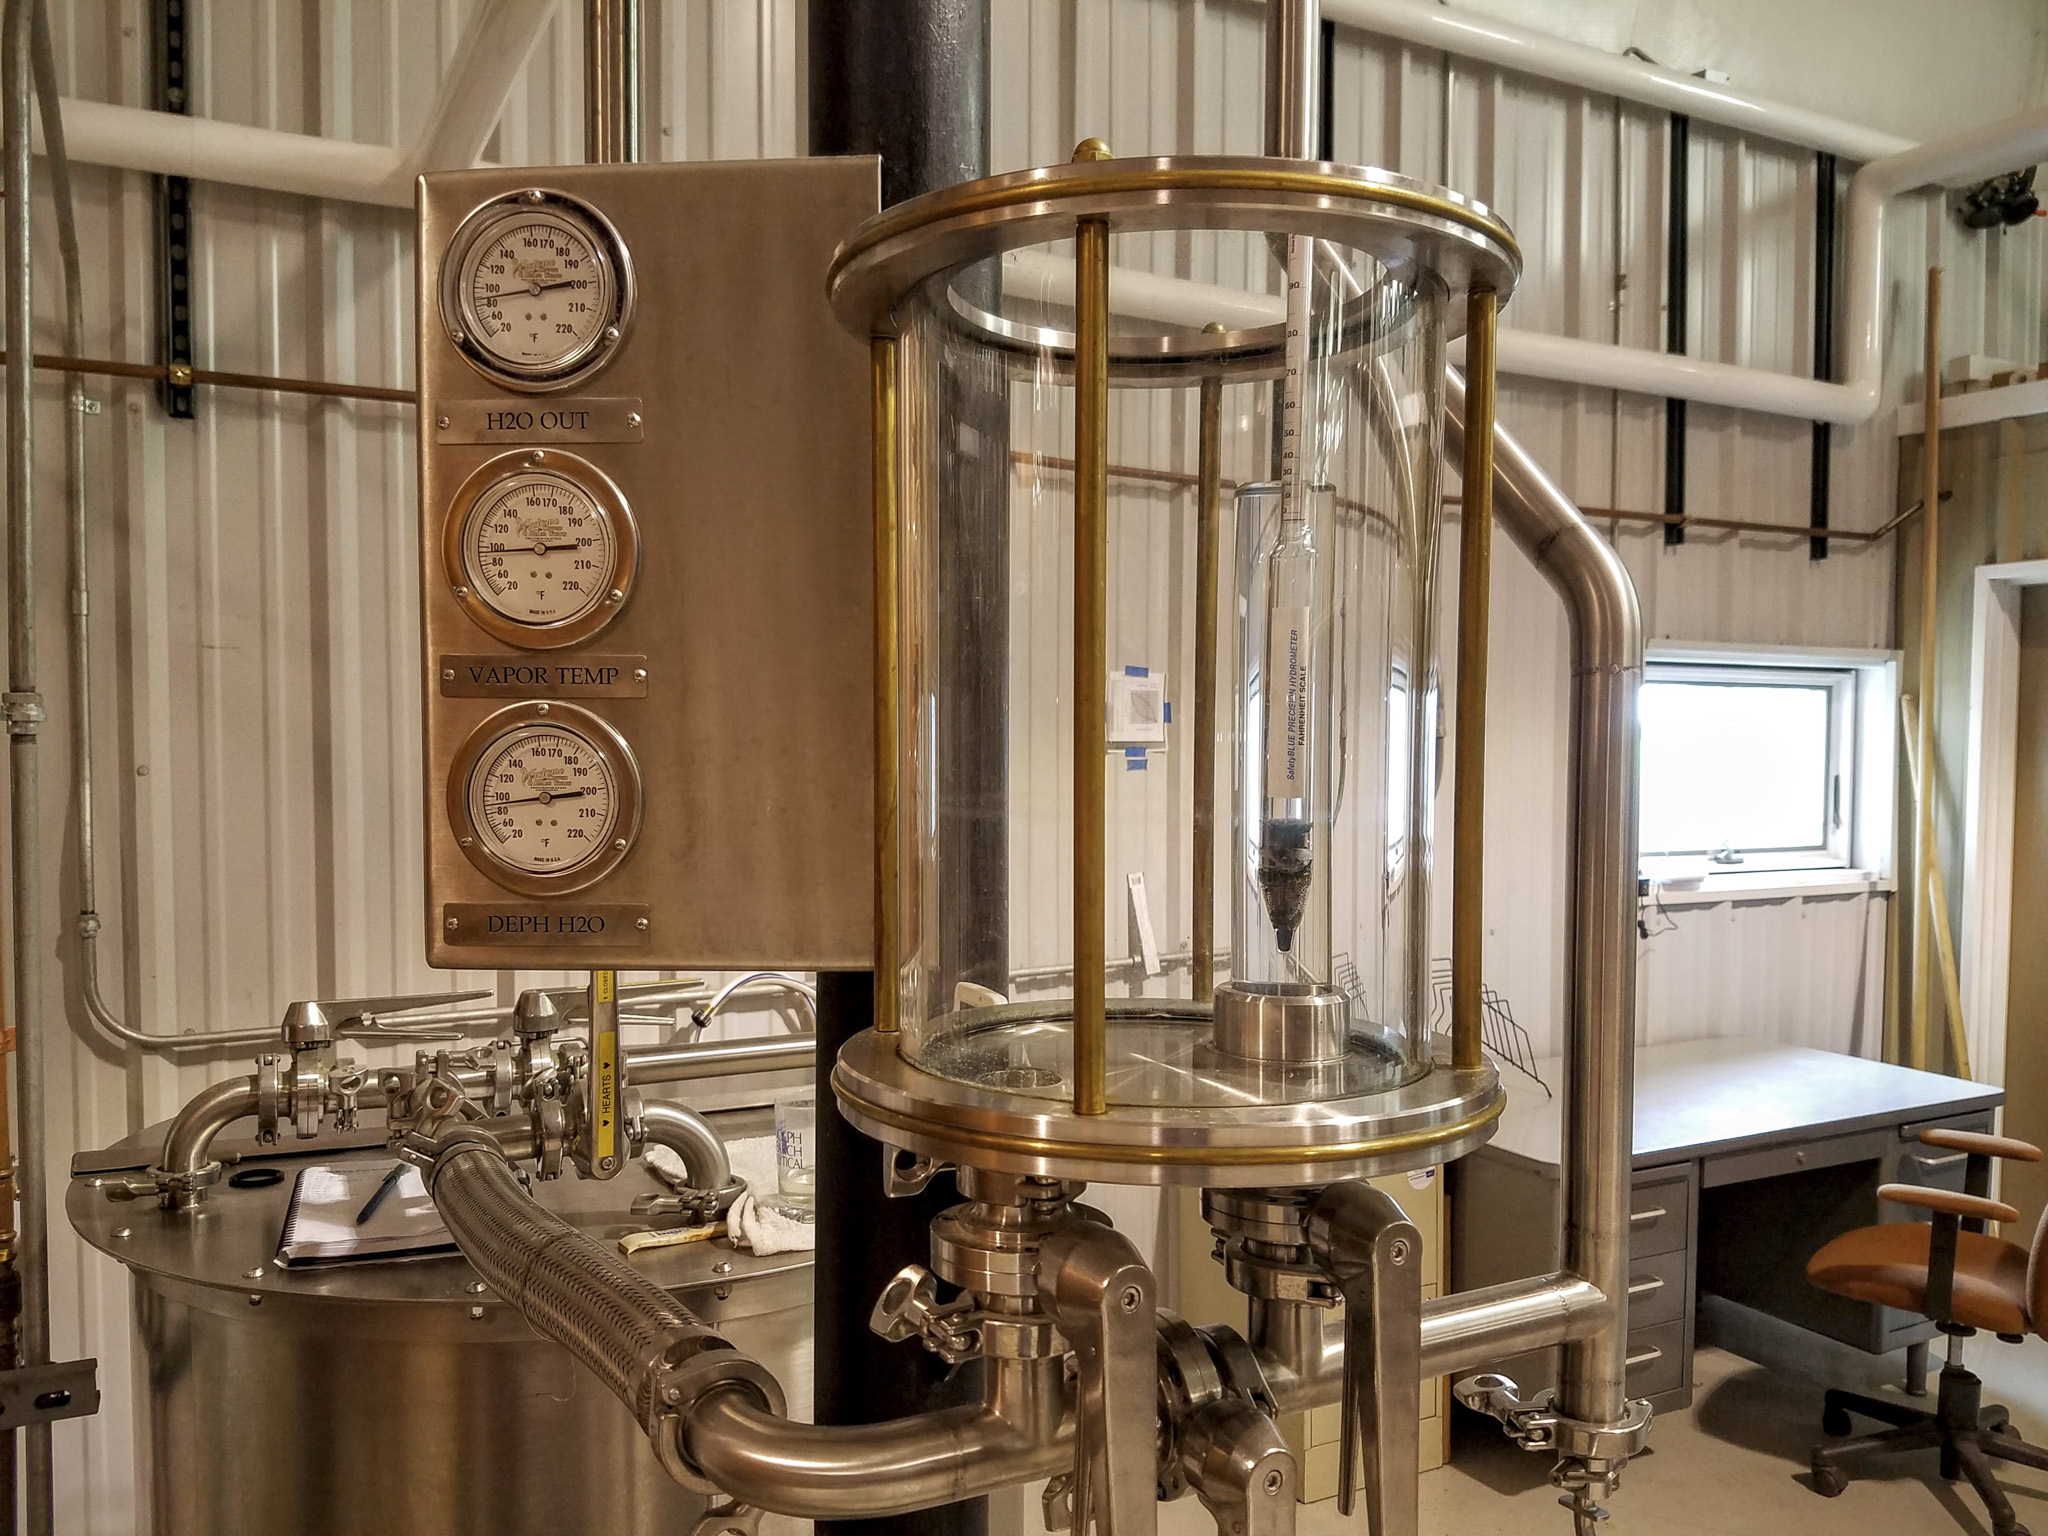 The hydrometer chamber used to measure the proof of alcohol coming off the still.